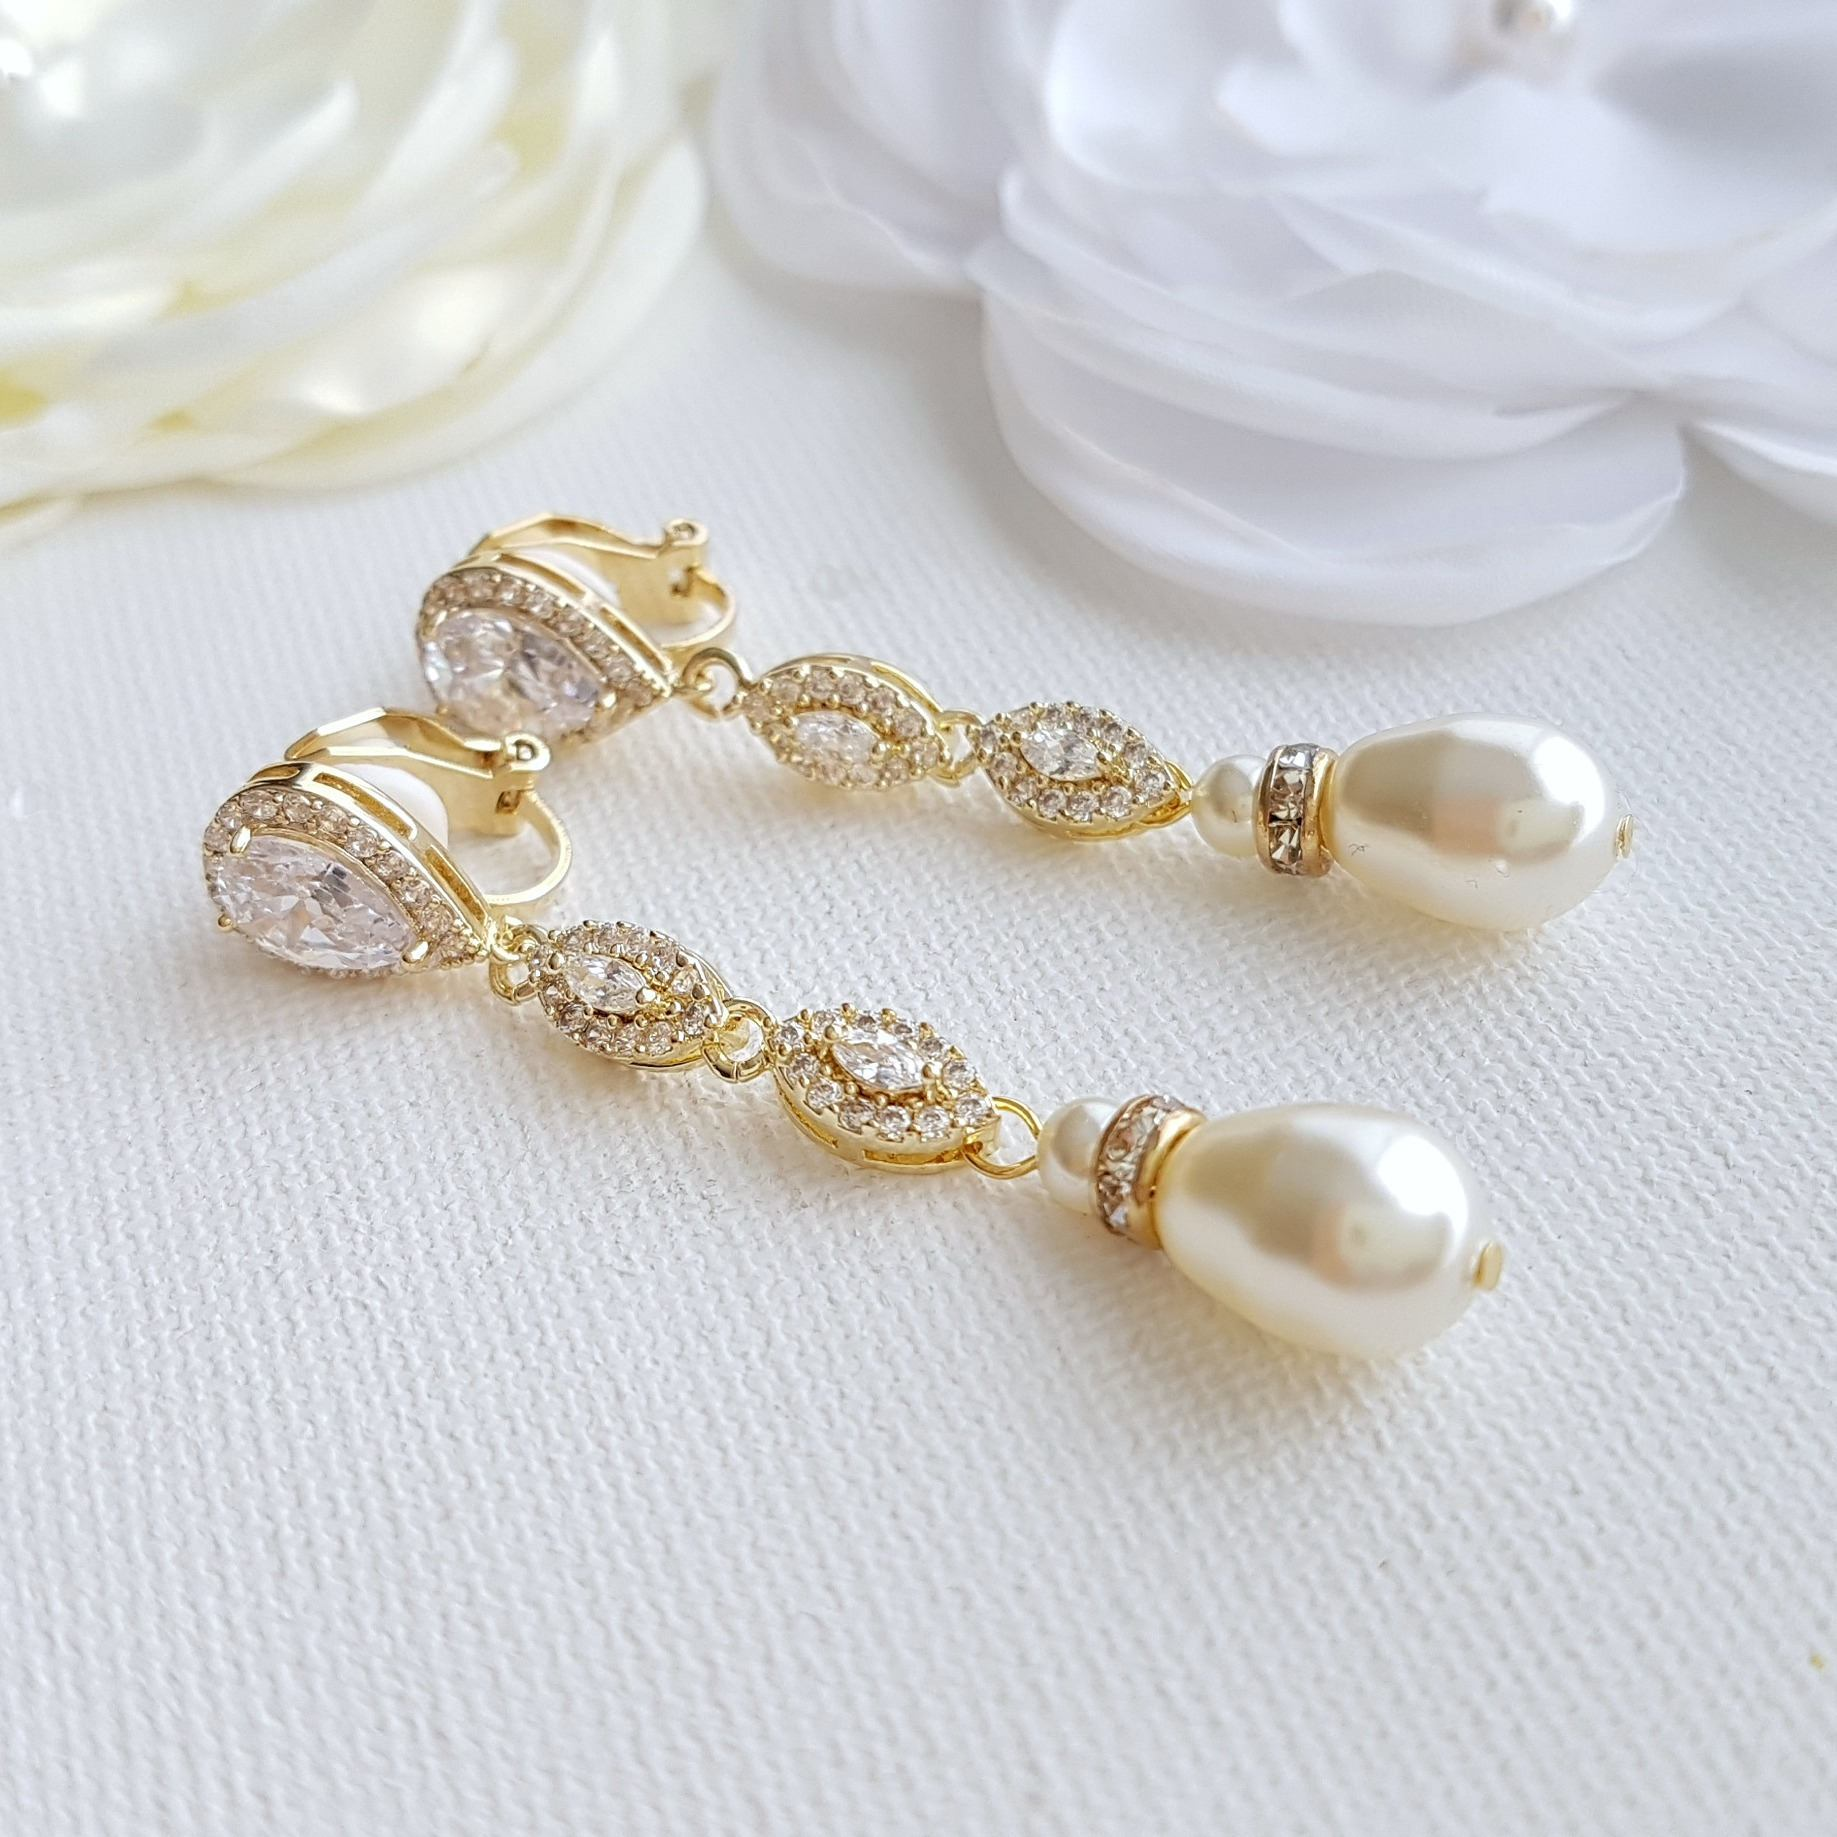 Gold Clip On Bridal Earrings-Abby